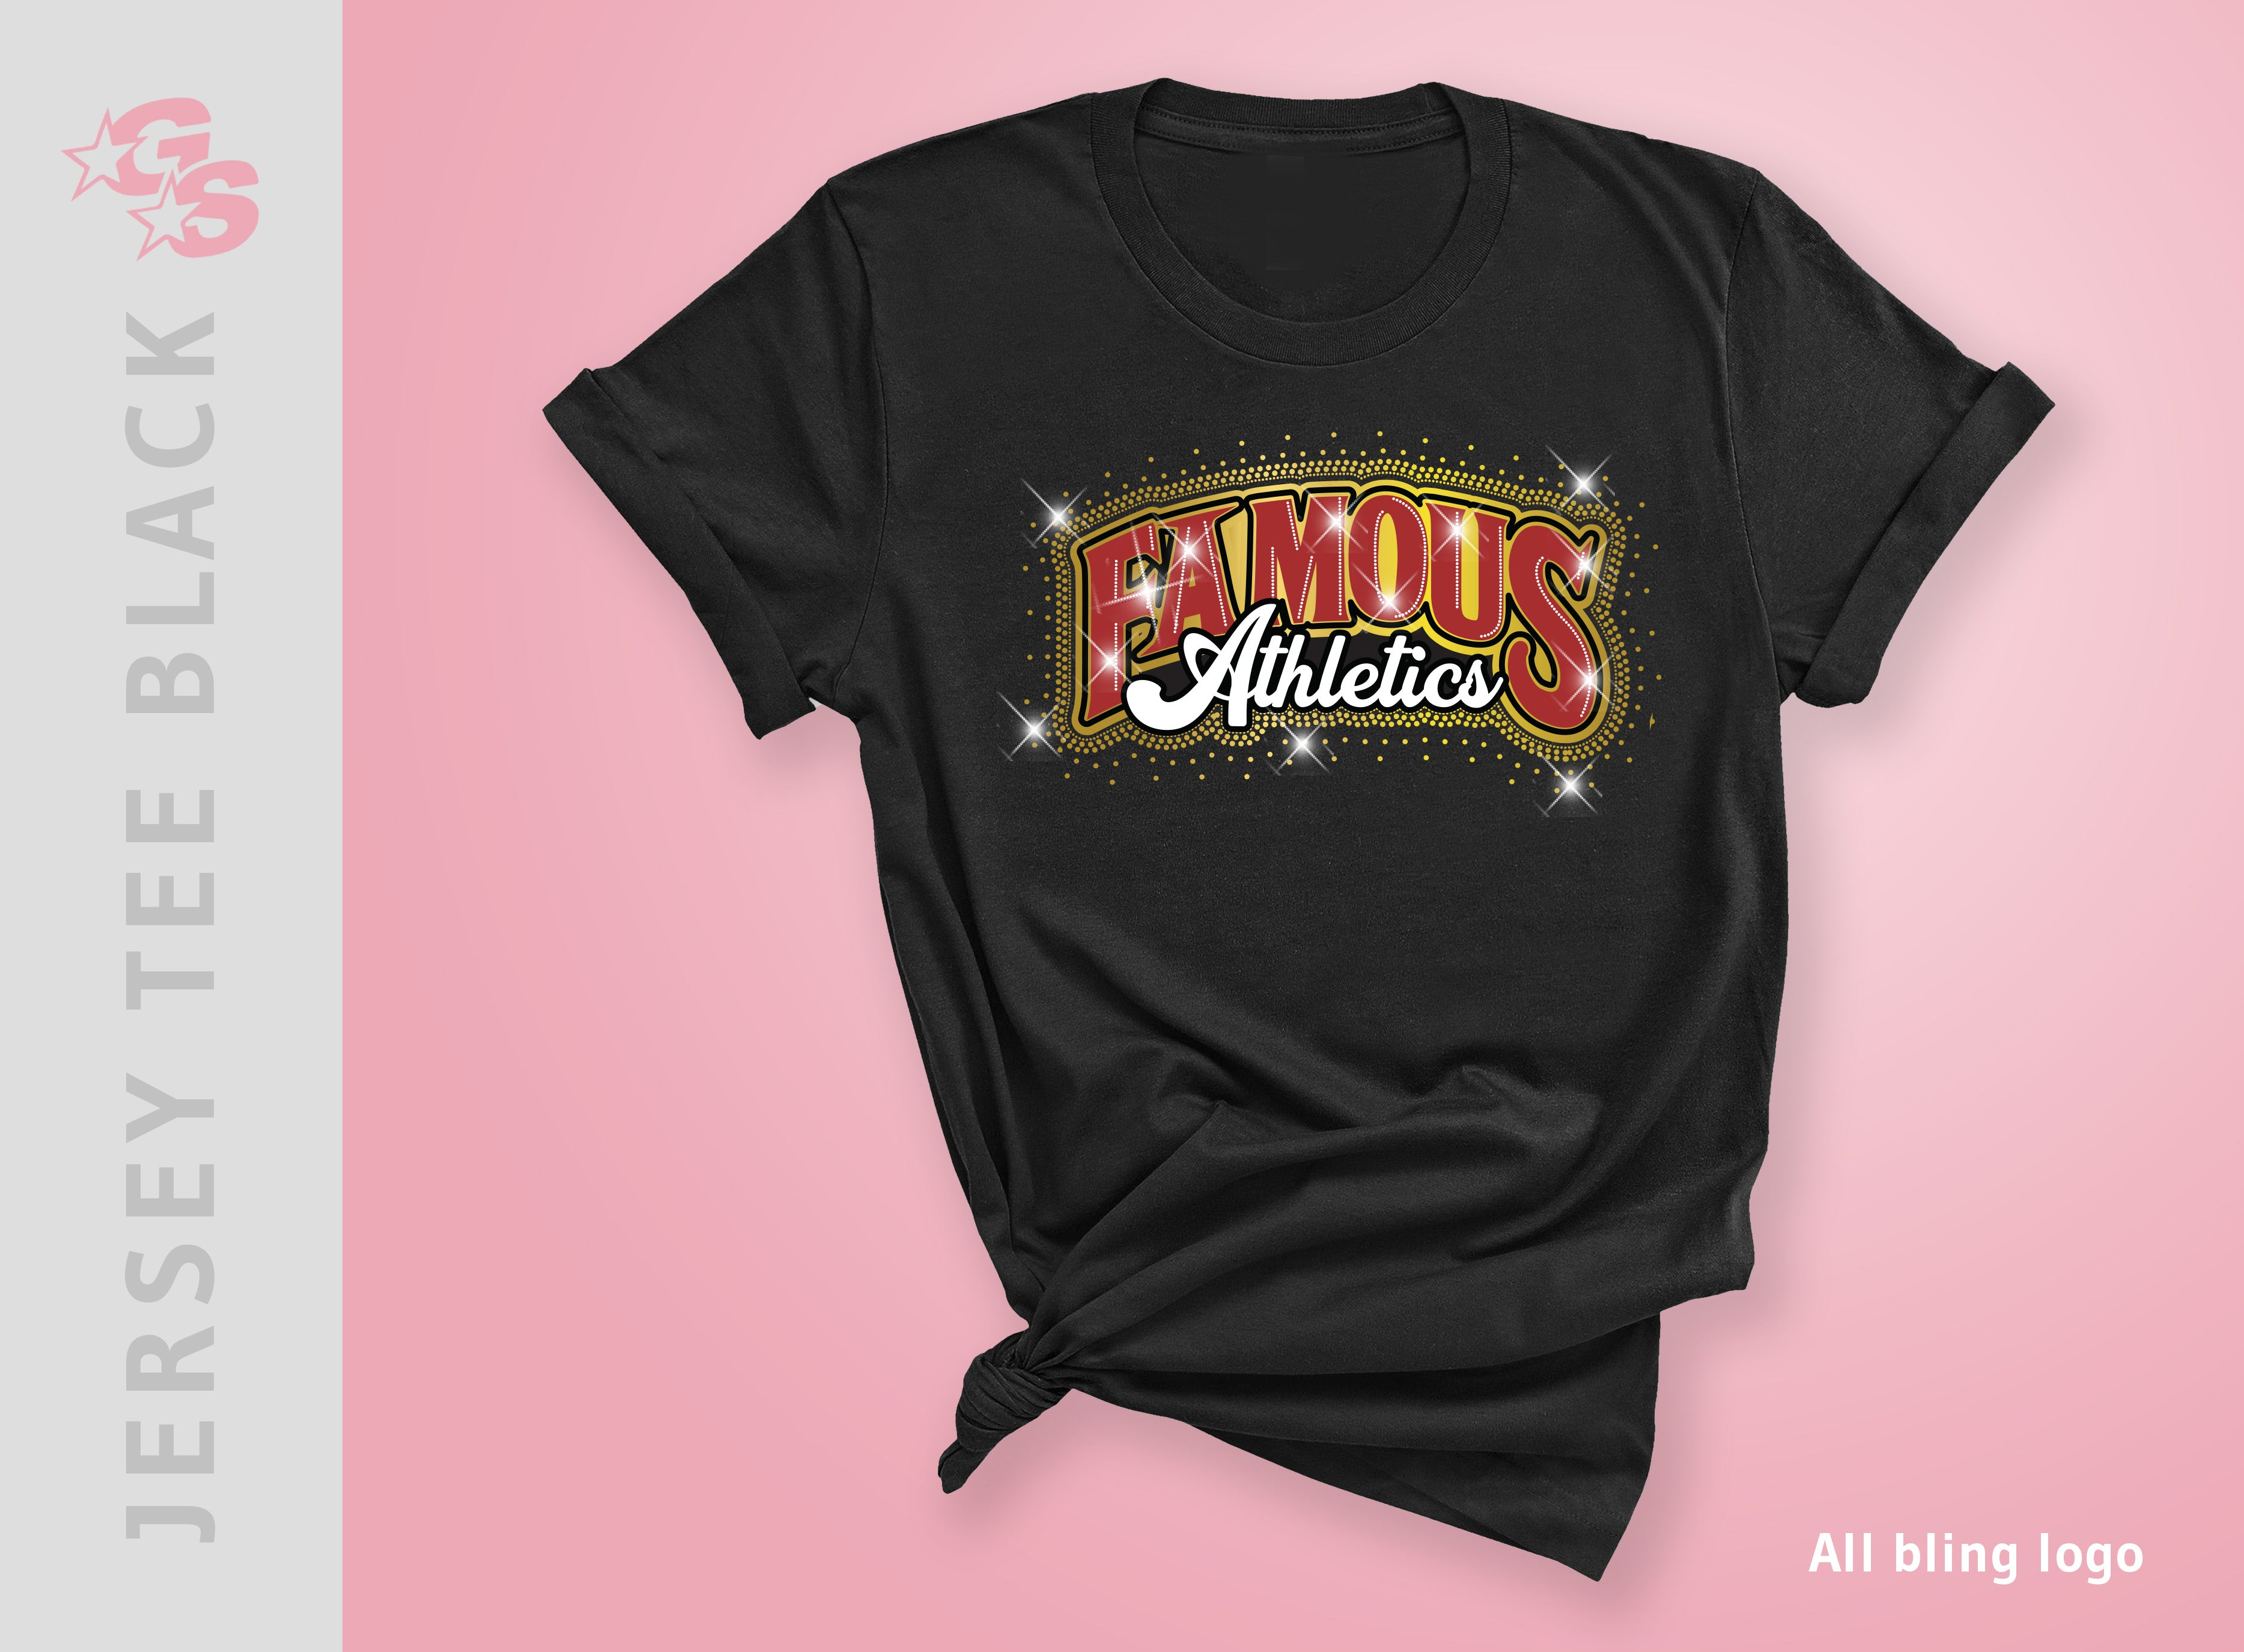 Jersey Tee (Black) with All bling logo - Famous Athletics